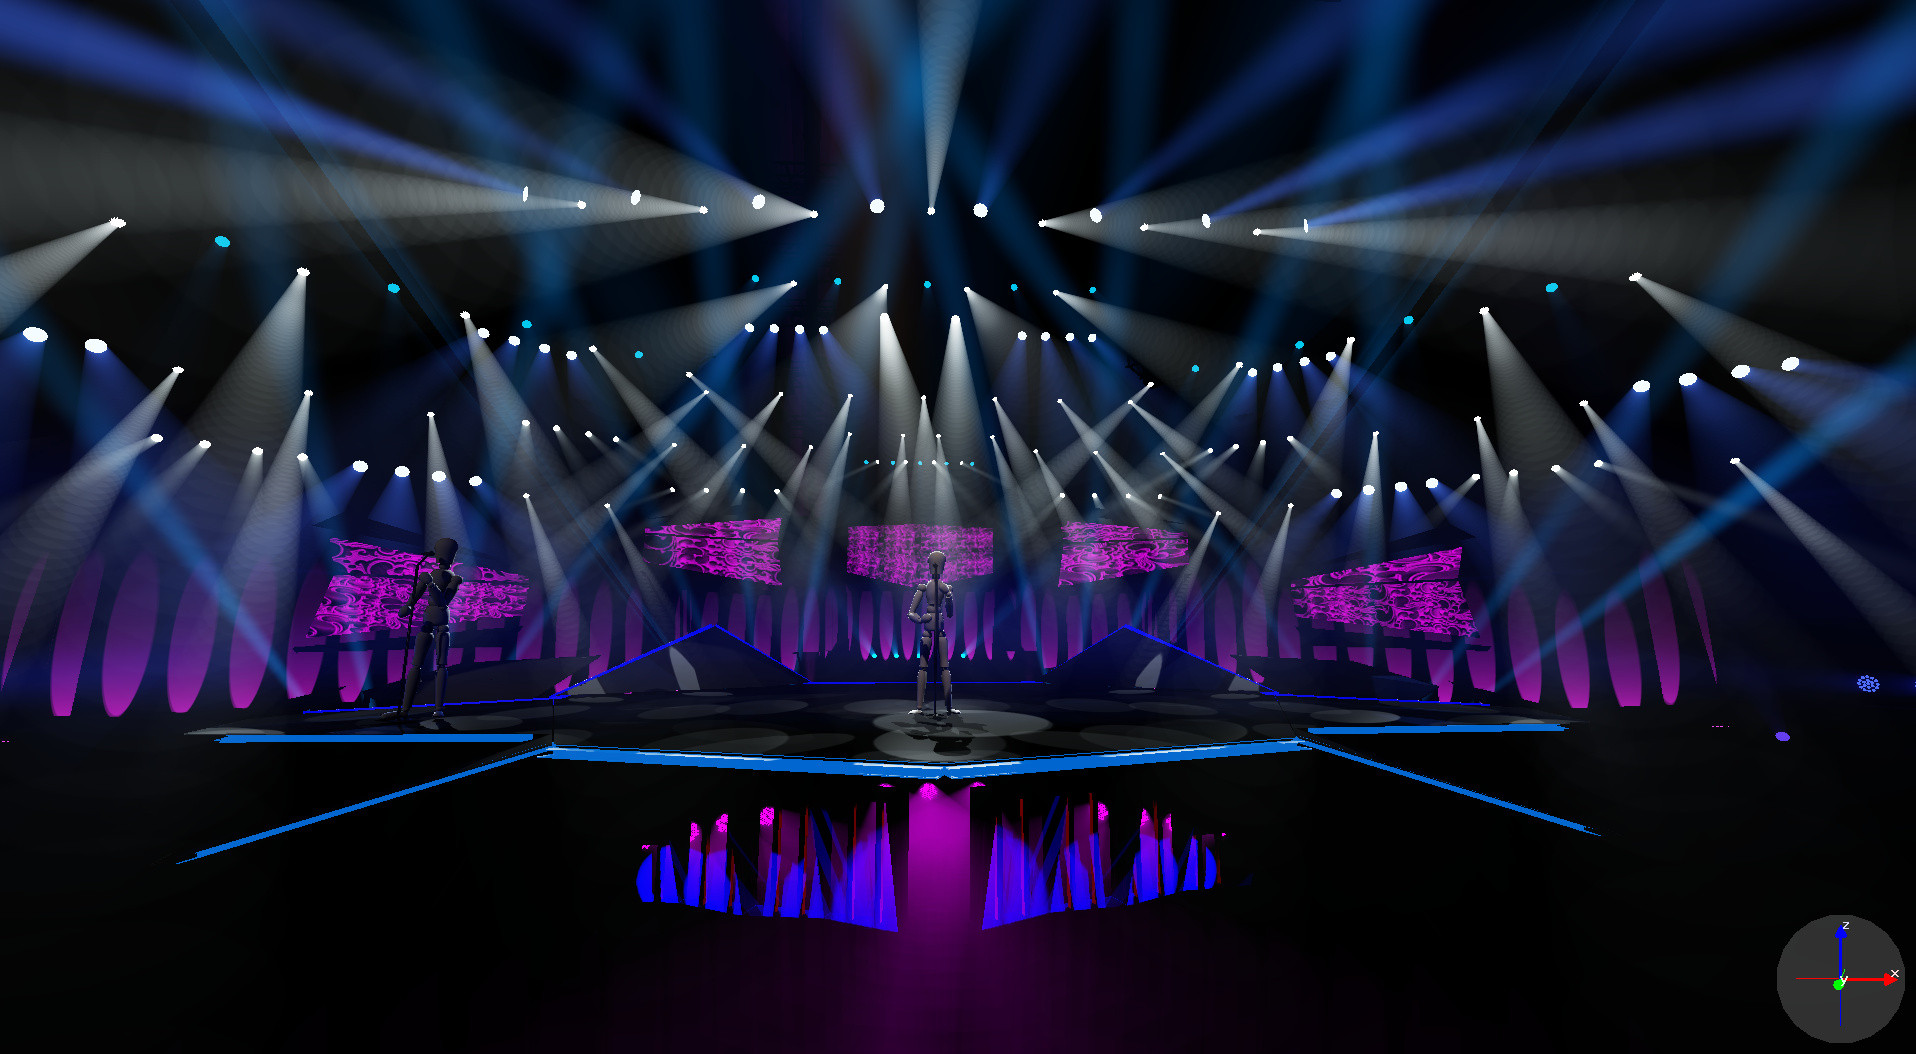 Wysiwyg perfects lighting on multisize stages at Melody